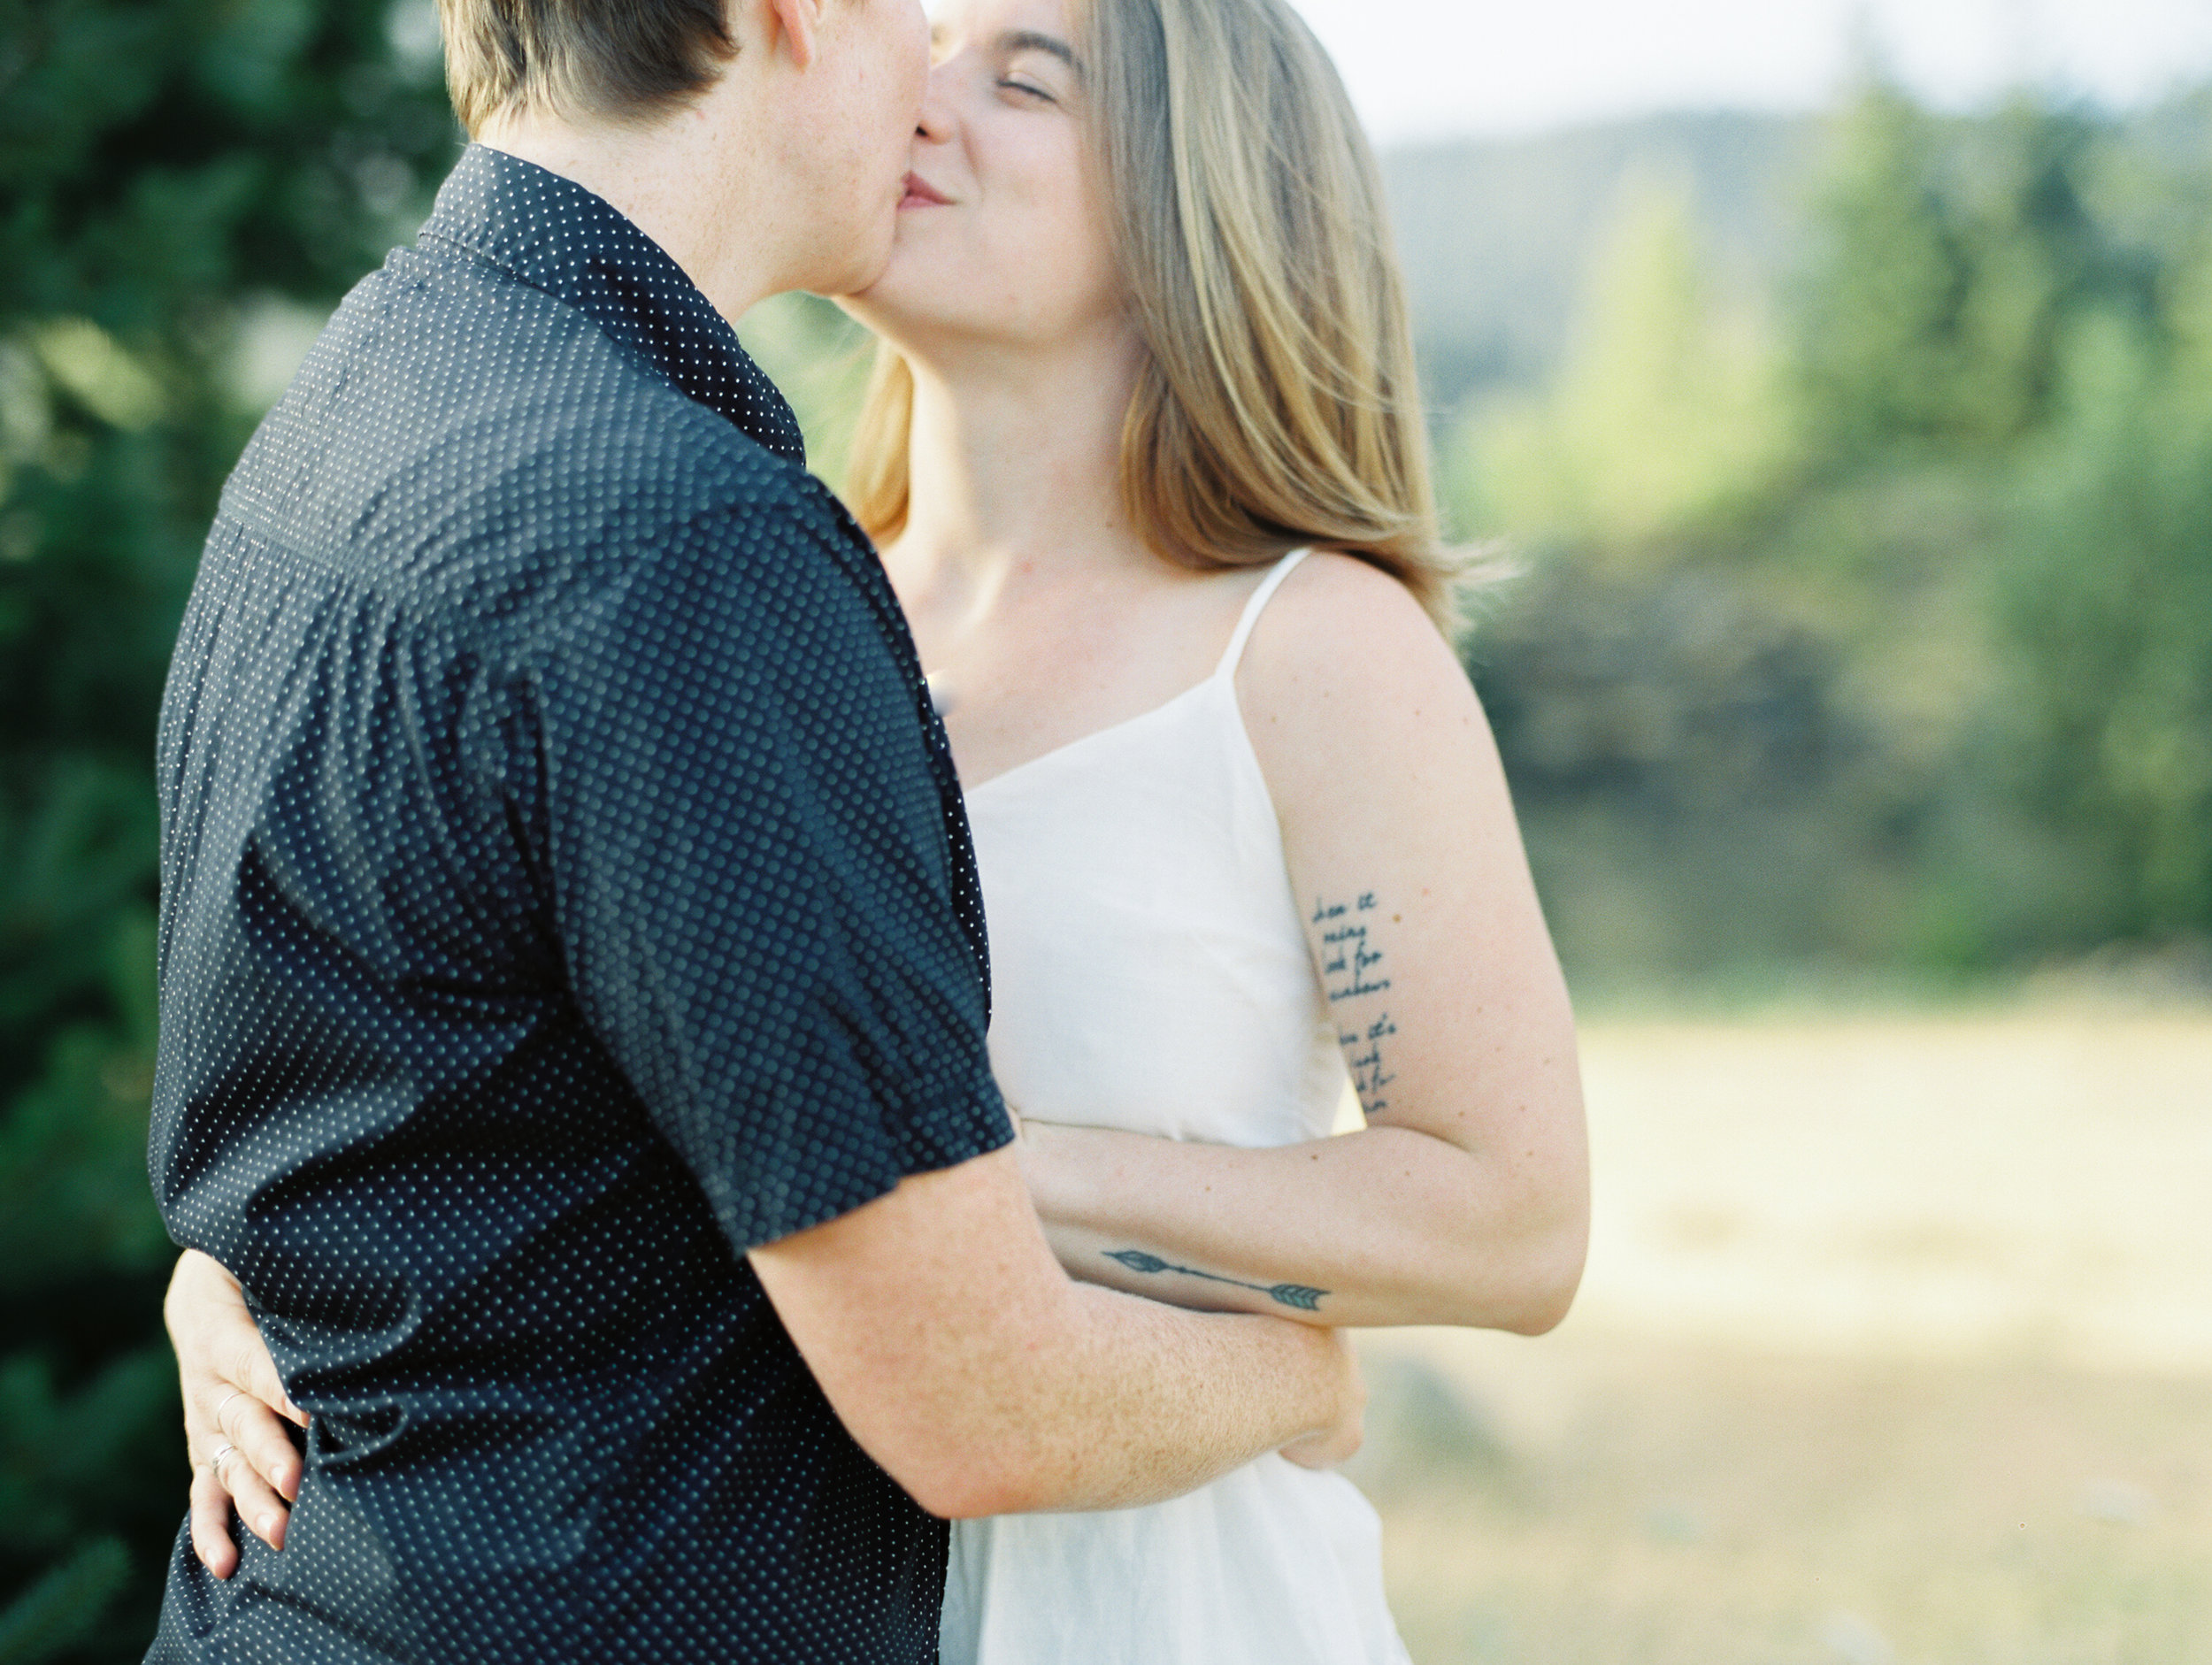 Courtney-Kendra-Govt-Cove-Engagement-12.jpg